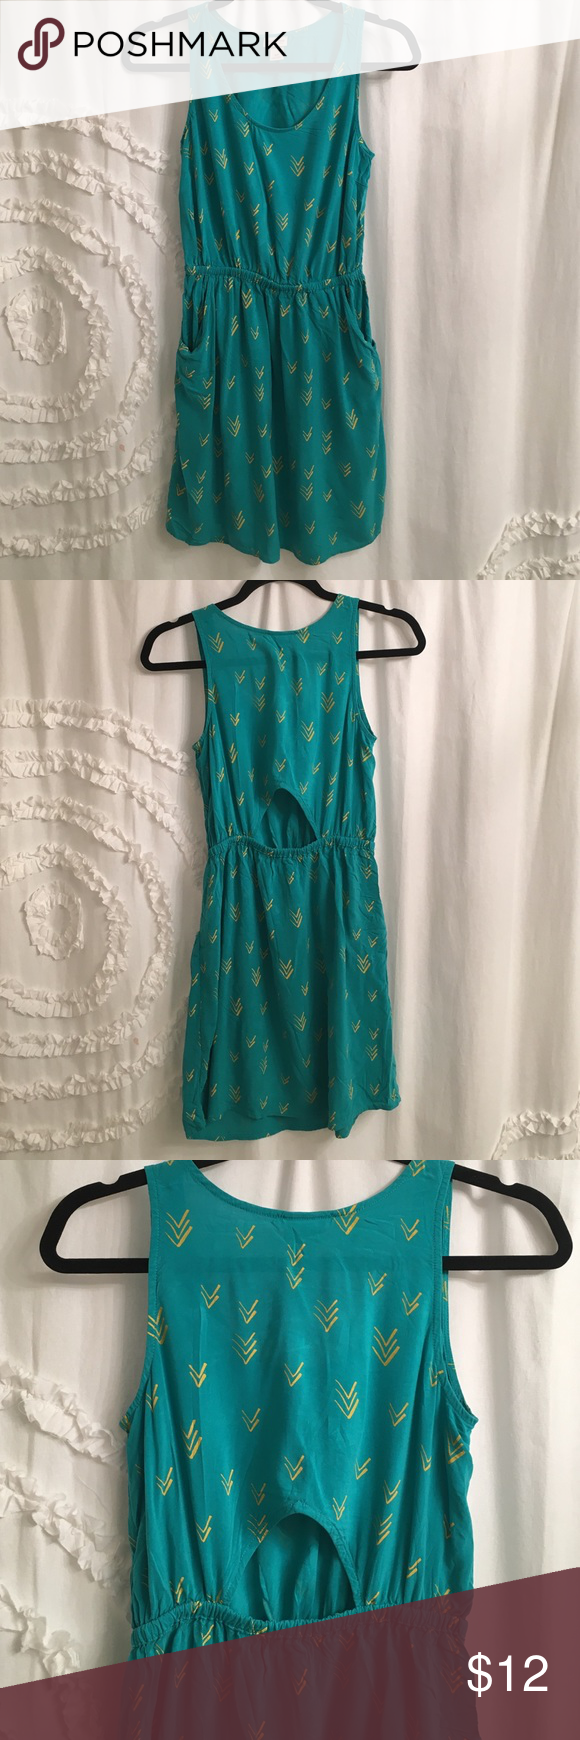 Mossimo teal arrow detail dress with cutout casual summer dresses